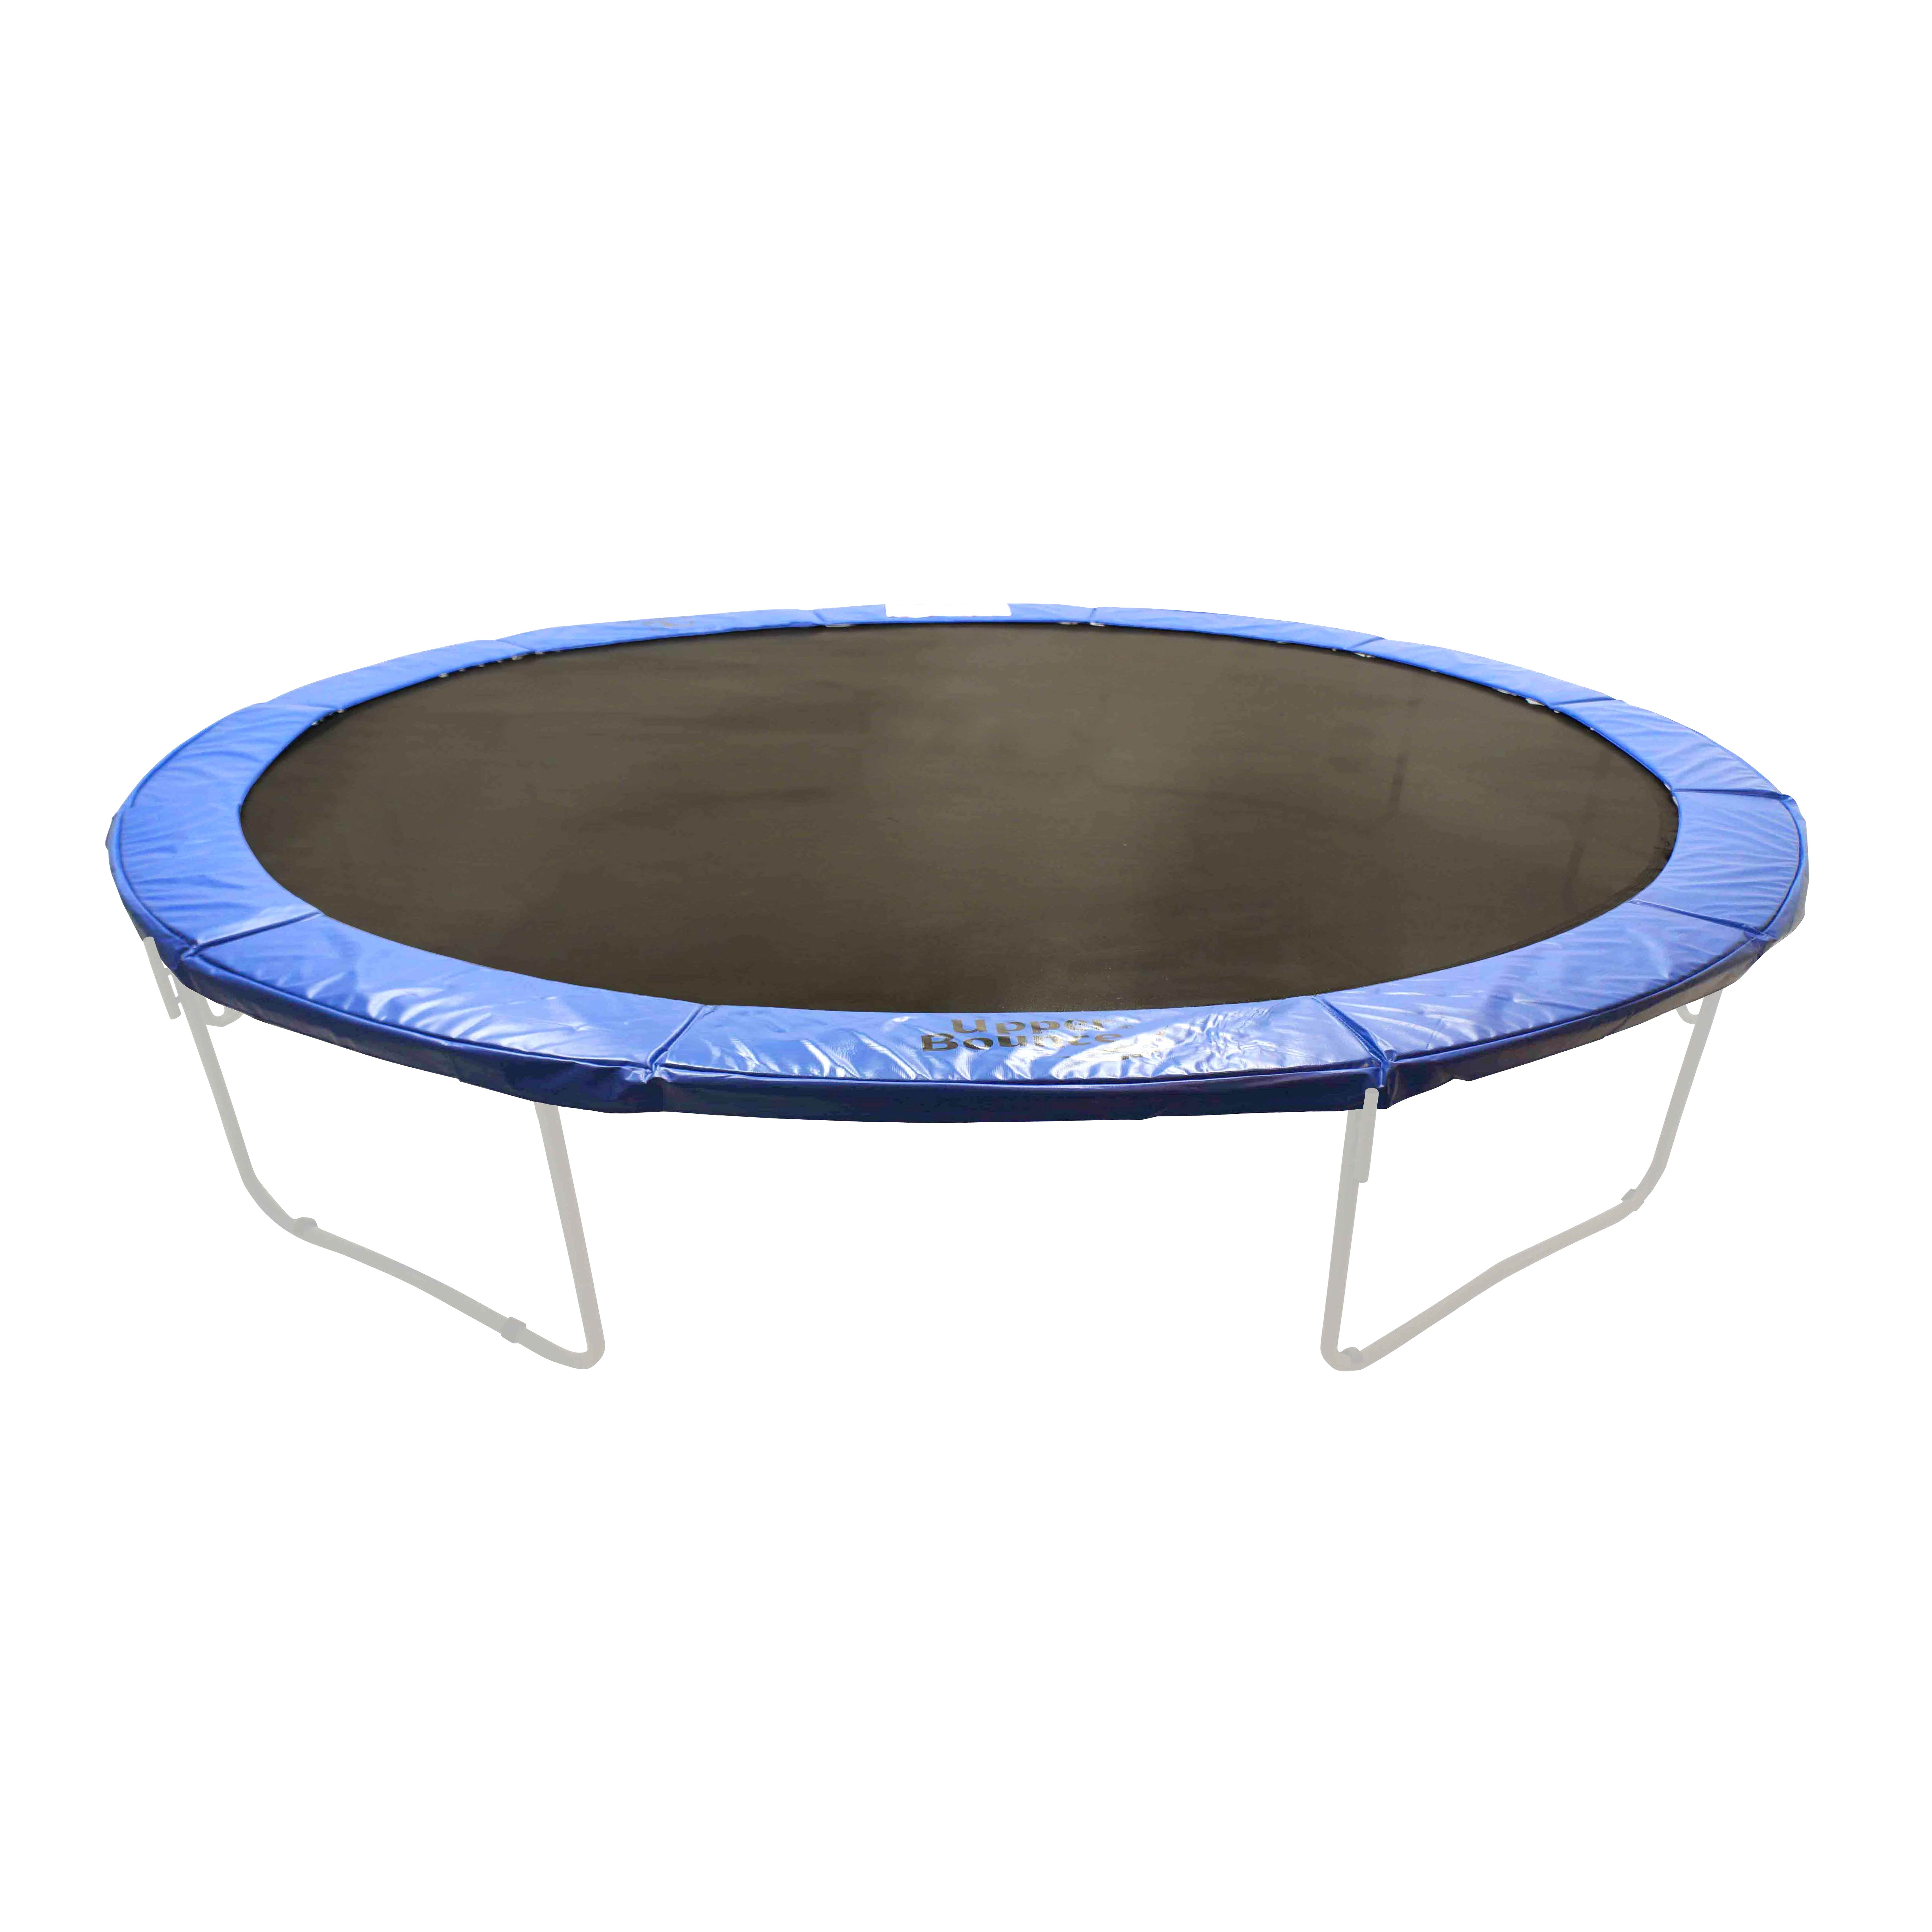 Upper Bounce 17' X 15' Super Trampoline Safety Frame Pad